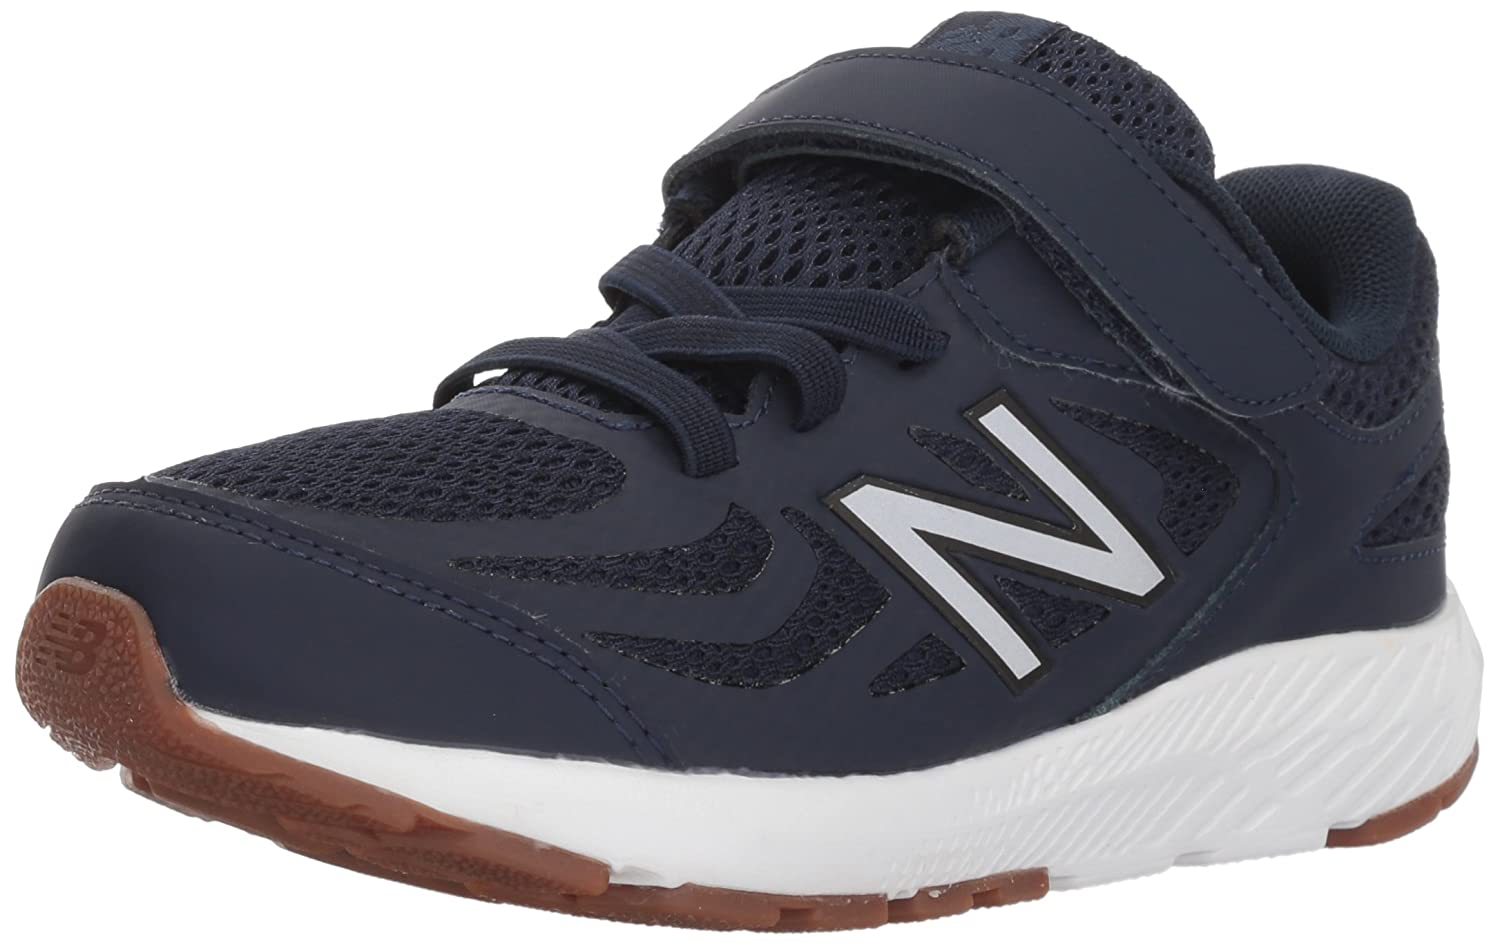 Pigment Black 6 W US Toddler New Balance Girls 519v1 Hook and Loop Running shoes